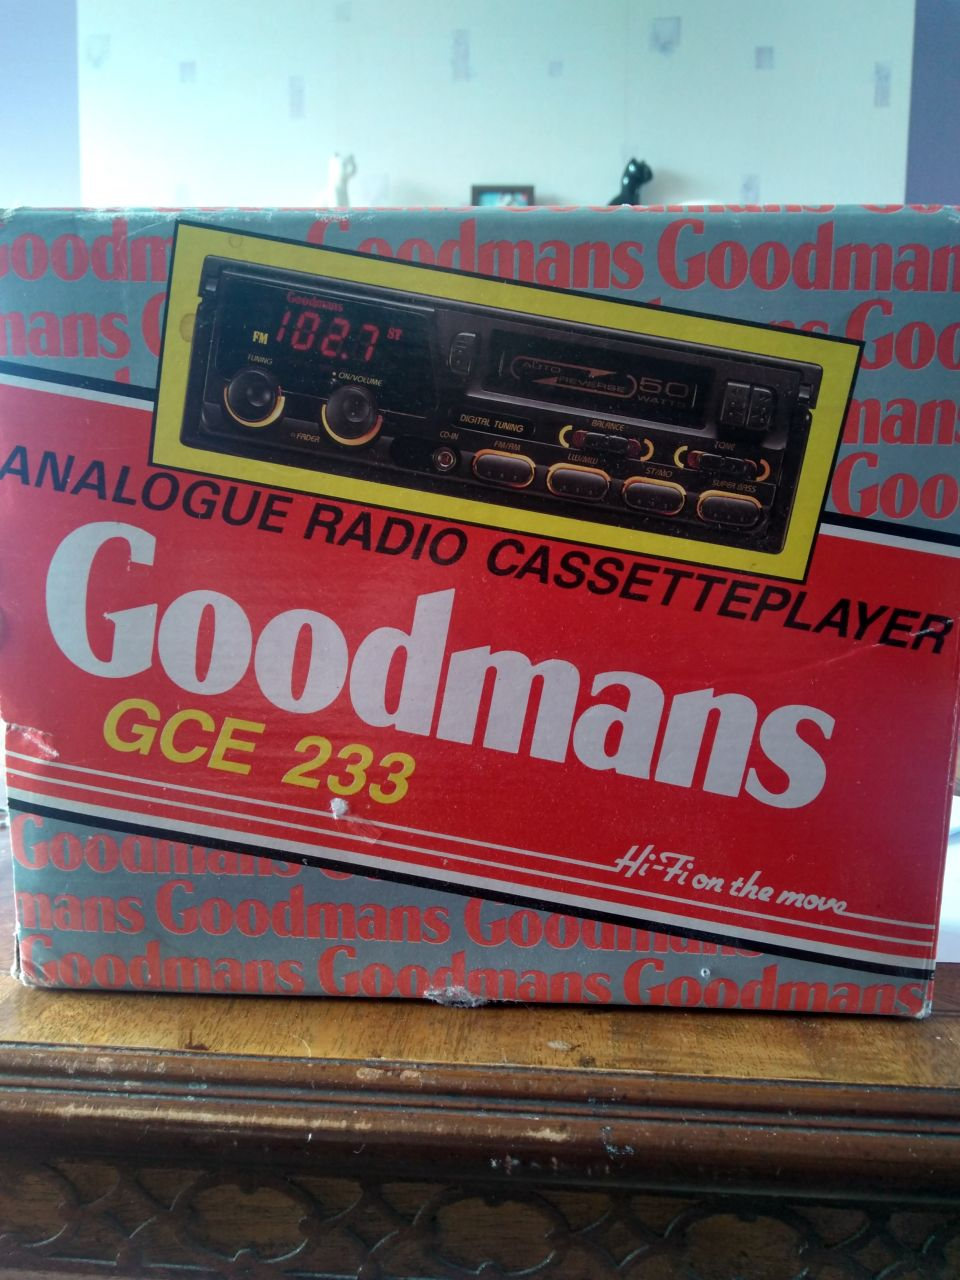 Vintage radio cassette player Wetherby new Goodmans GCE 233